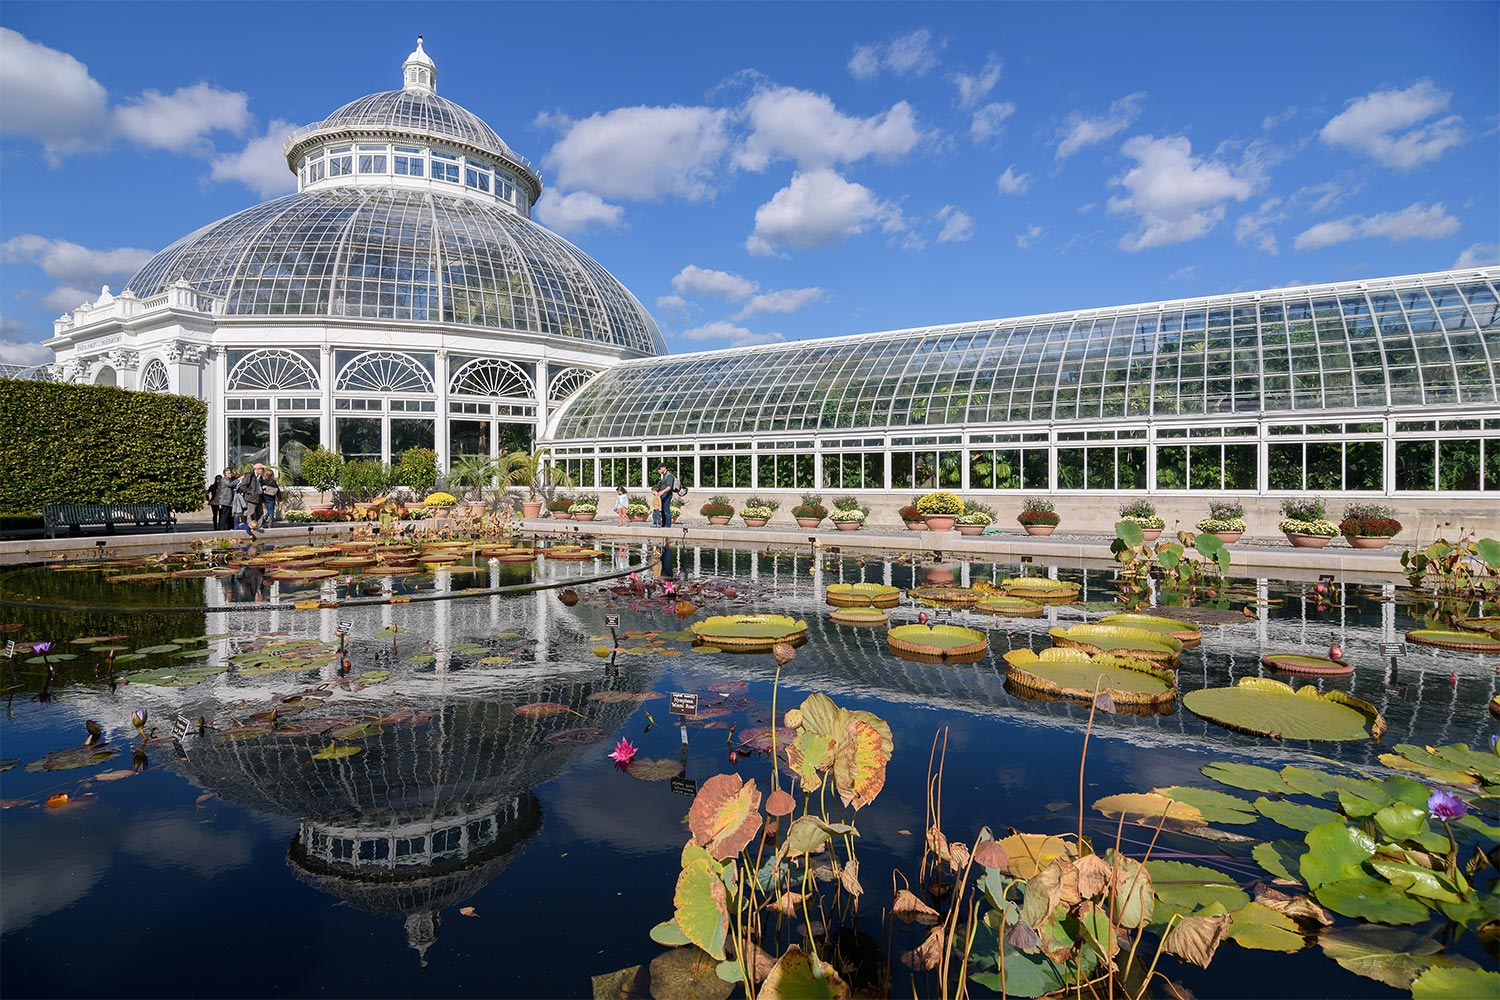 Image of a botanical garden greenhouse with a pond in the foreground and water lilies